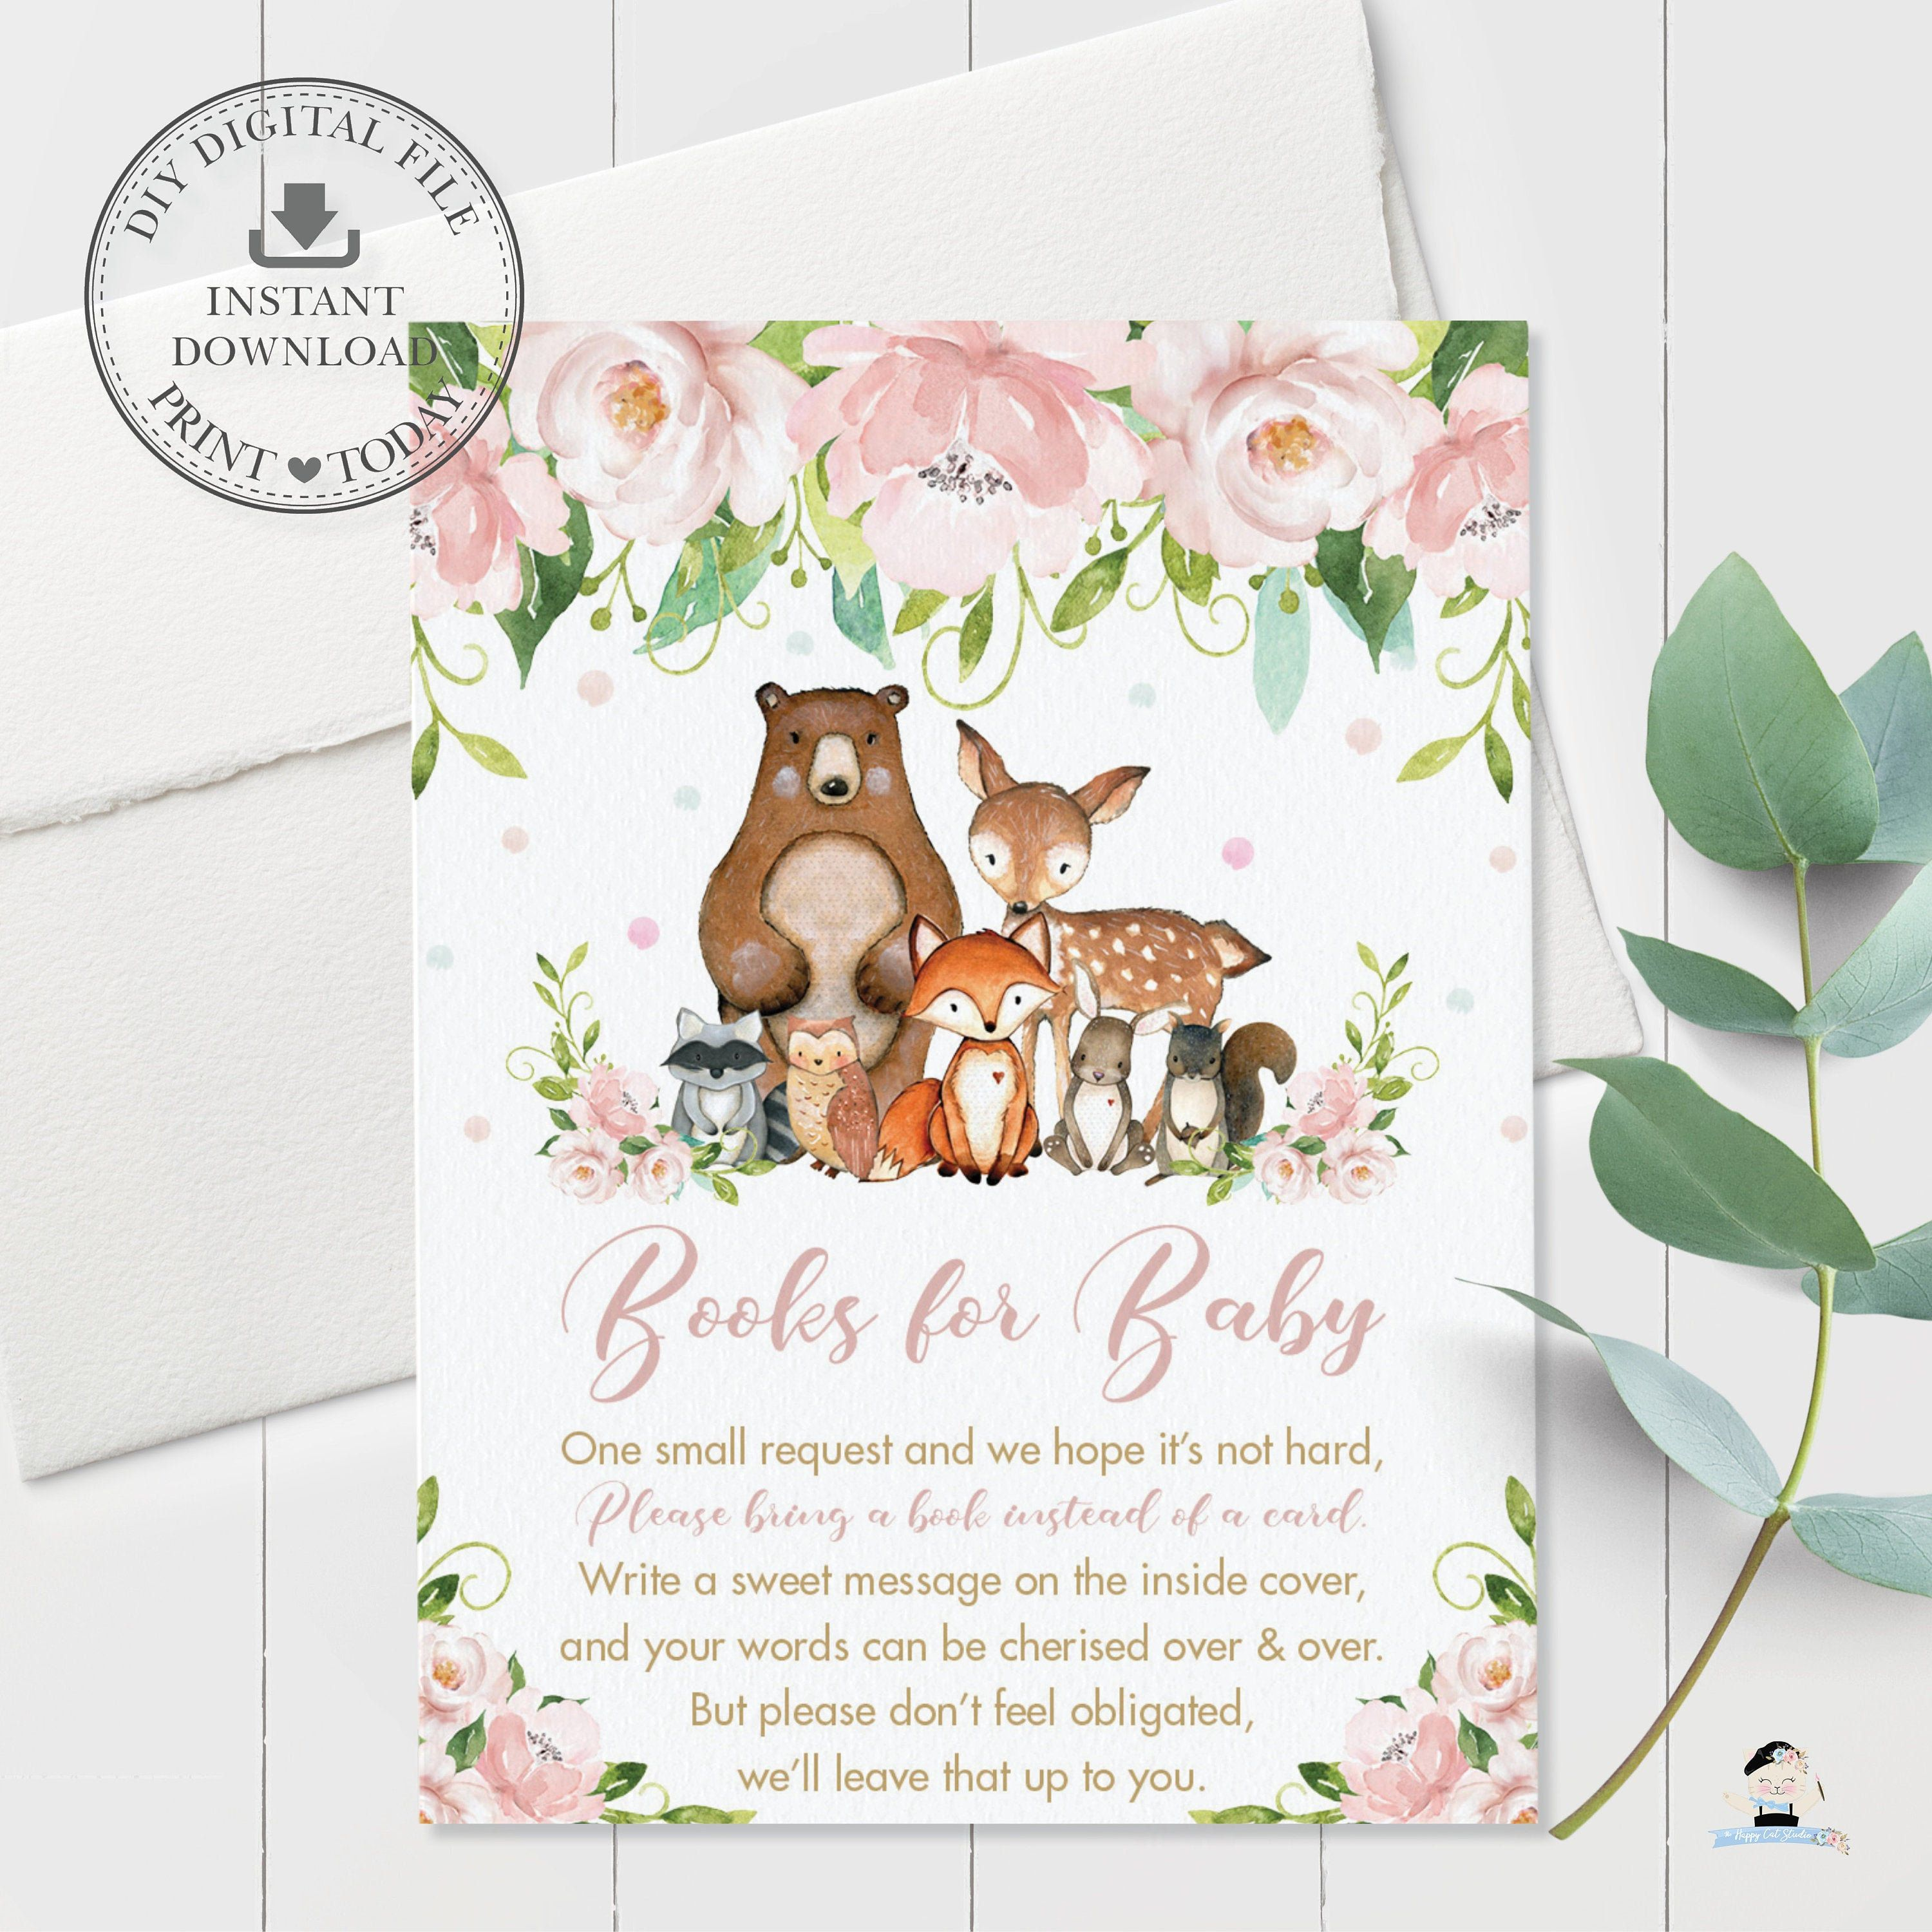 Rustic Woodland Greenery Fun Baby Shower Activity Printable WG7 Woodland Animals What/'s In Your Phone Game INSTANT DOWNLOAD